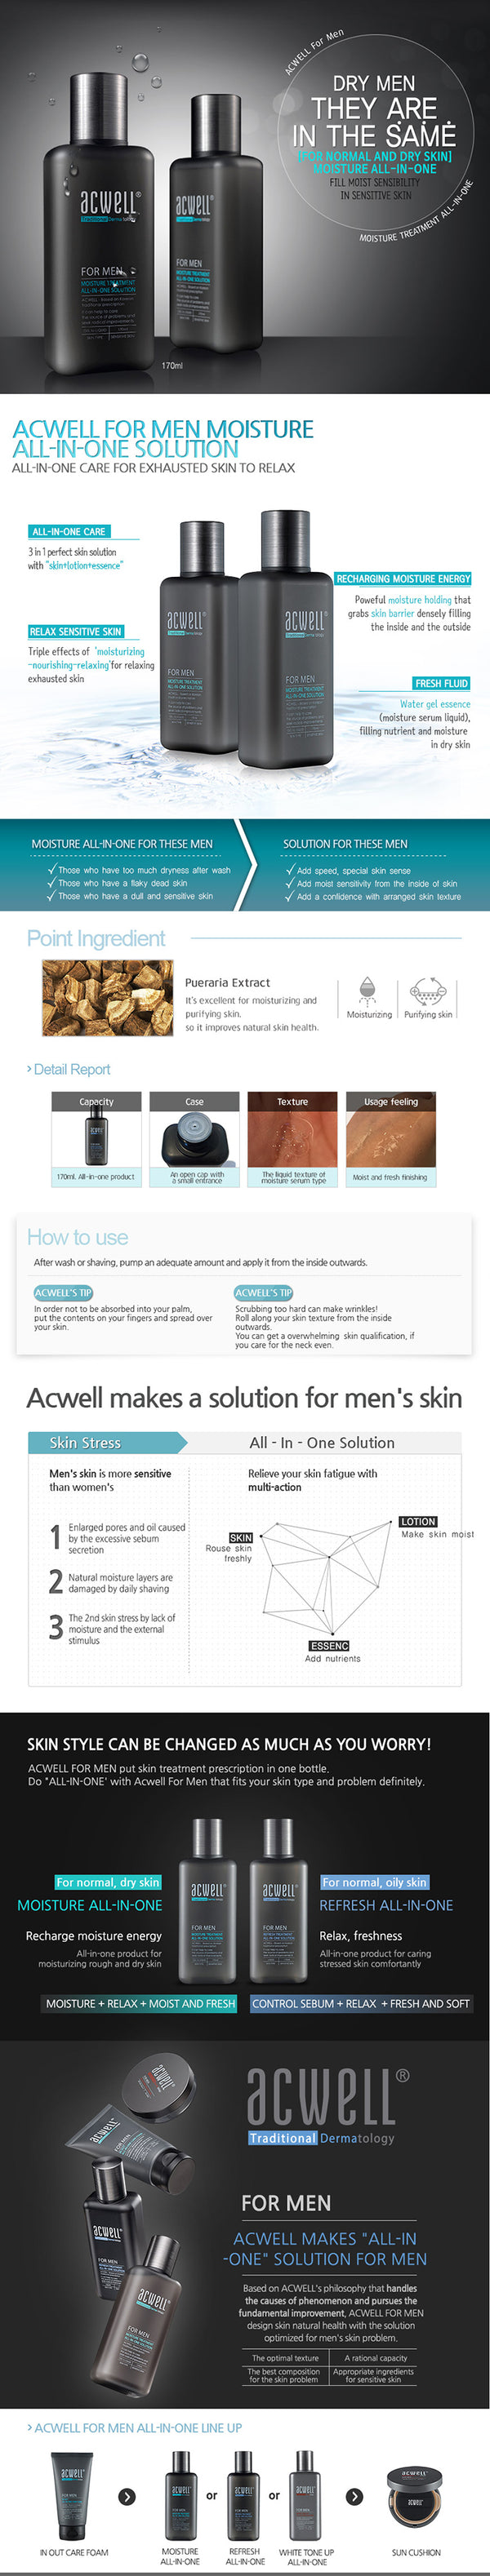 ACWELL For Men Moisture Treatment All-In-One Solution